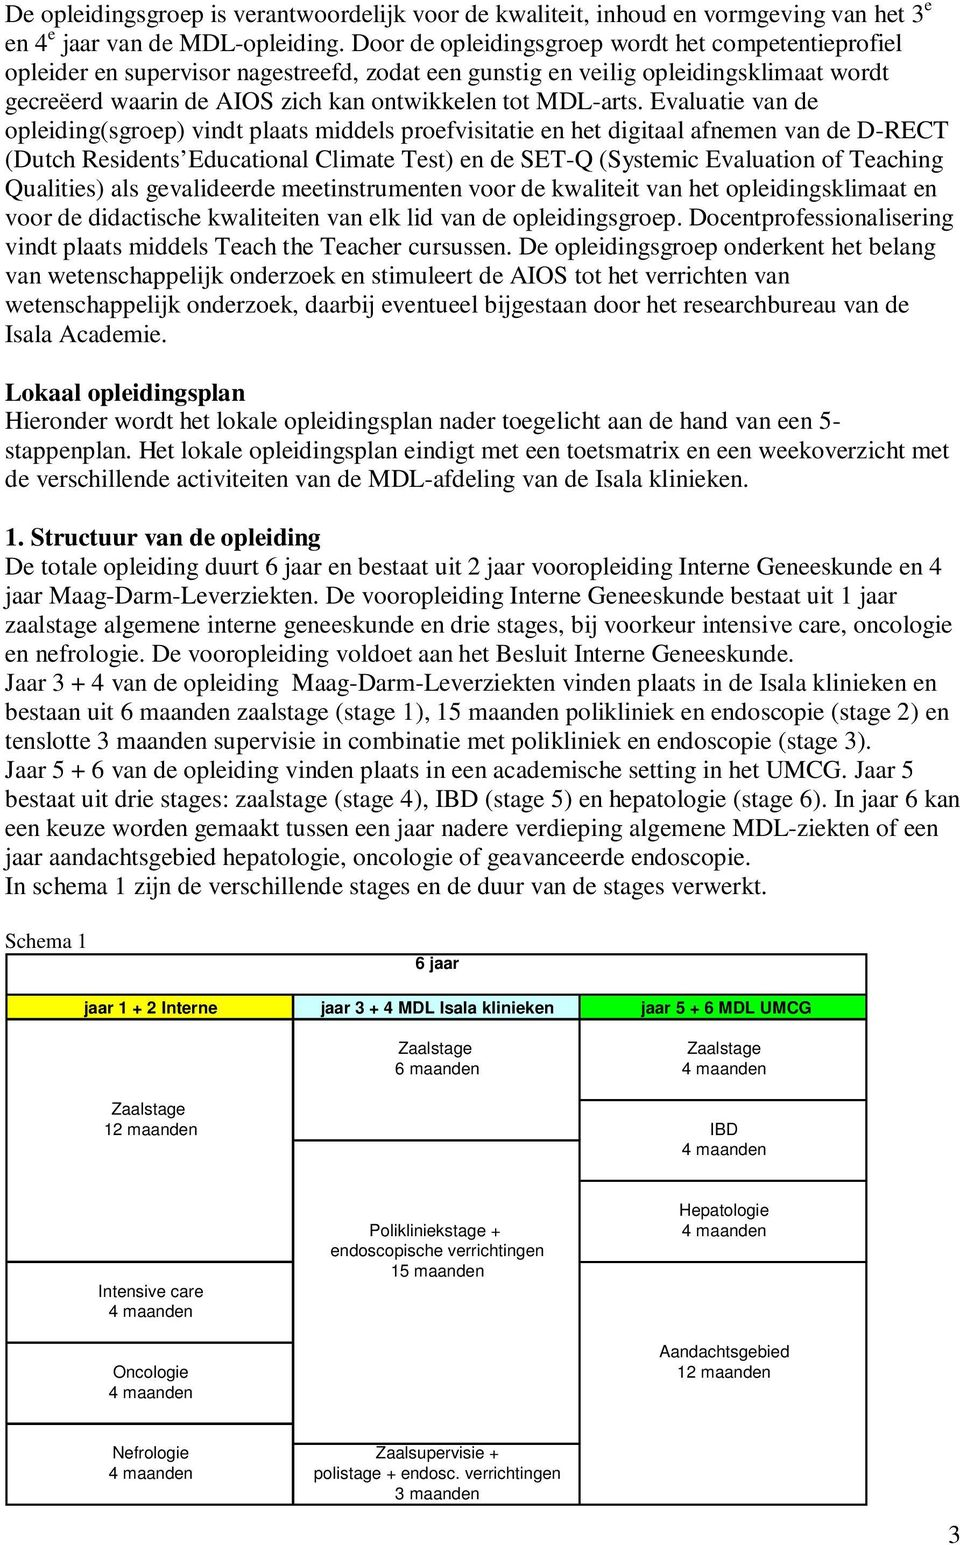 Evaluatie van de opleiding(sgroep) vindt plaats middels proefvisitatie en het digitaal afnemen van de D-RECT (Dutch Residents Educational Climate Test) en de SET-Q (Systemic Evaluation of Teaching